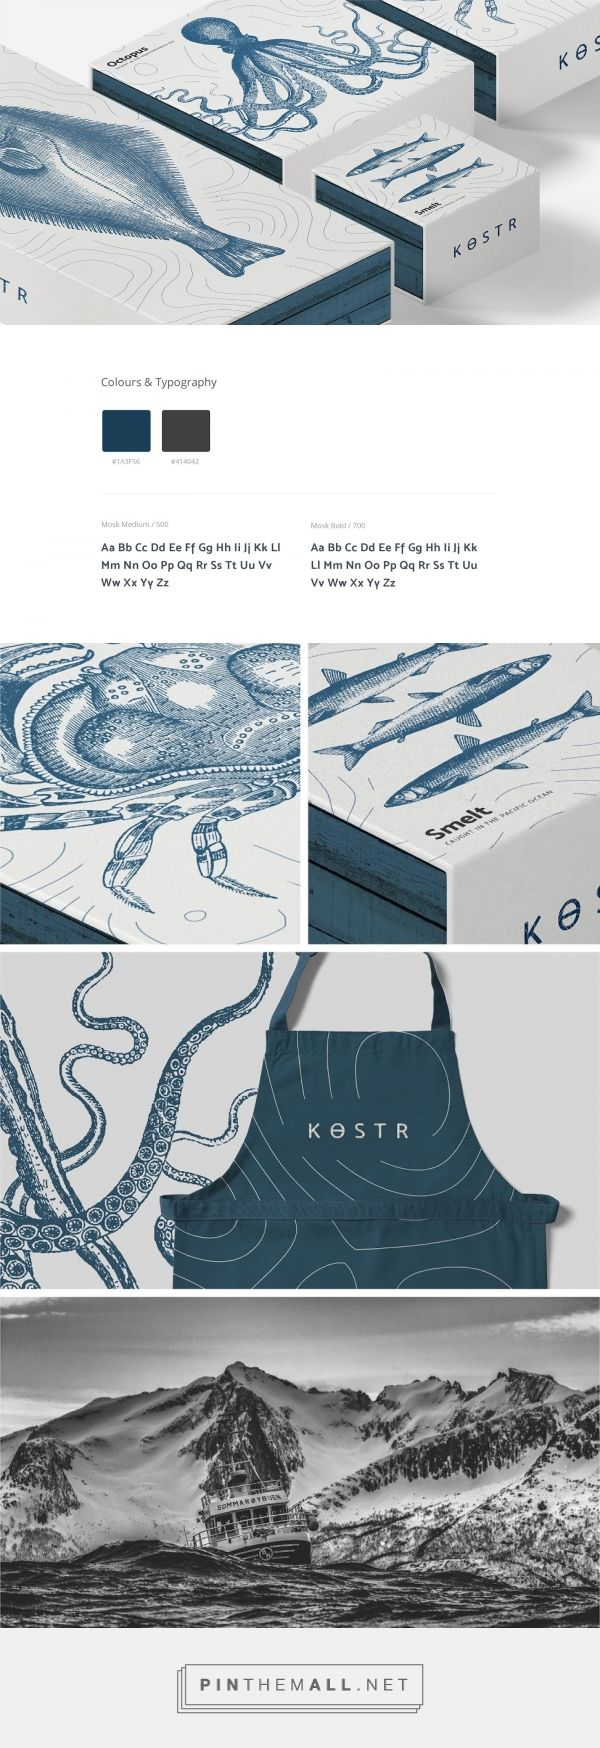 Kostr seafood packaging design by Matt Ellis - http://www.packagingoftheworld.com/2017/11/kostr.html